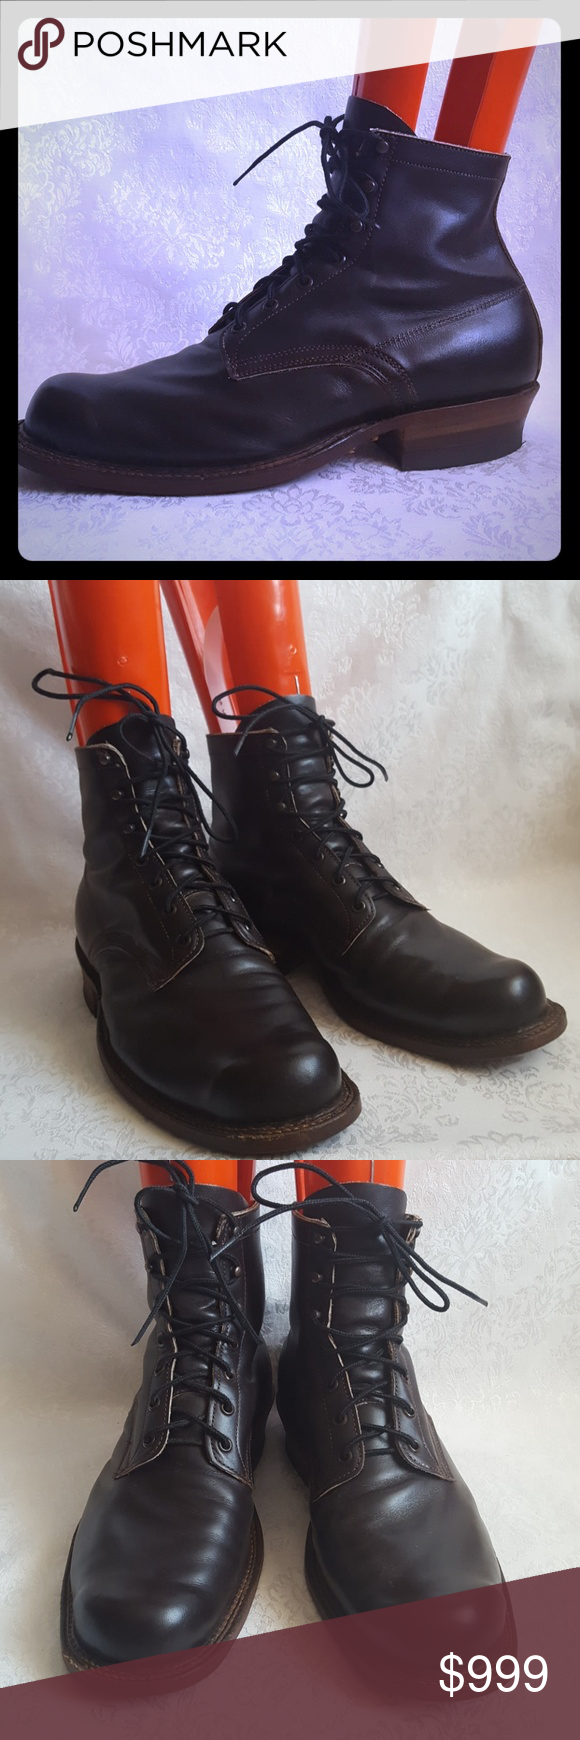 White S Brown Leather Semi Dress Rancher Boot Boots Brown Leather Dress With Boots [ 1740 x 580 Pixel ]